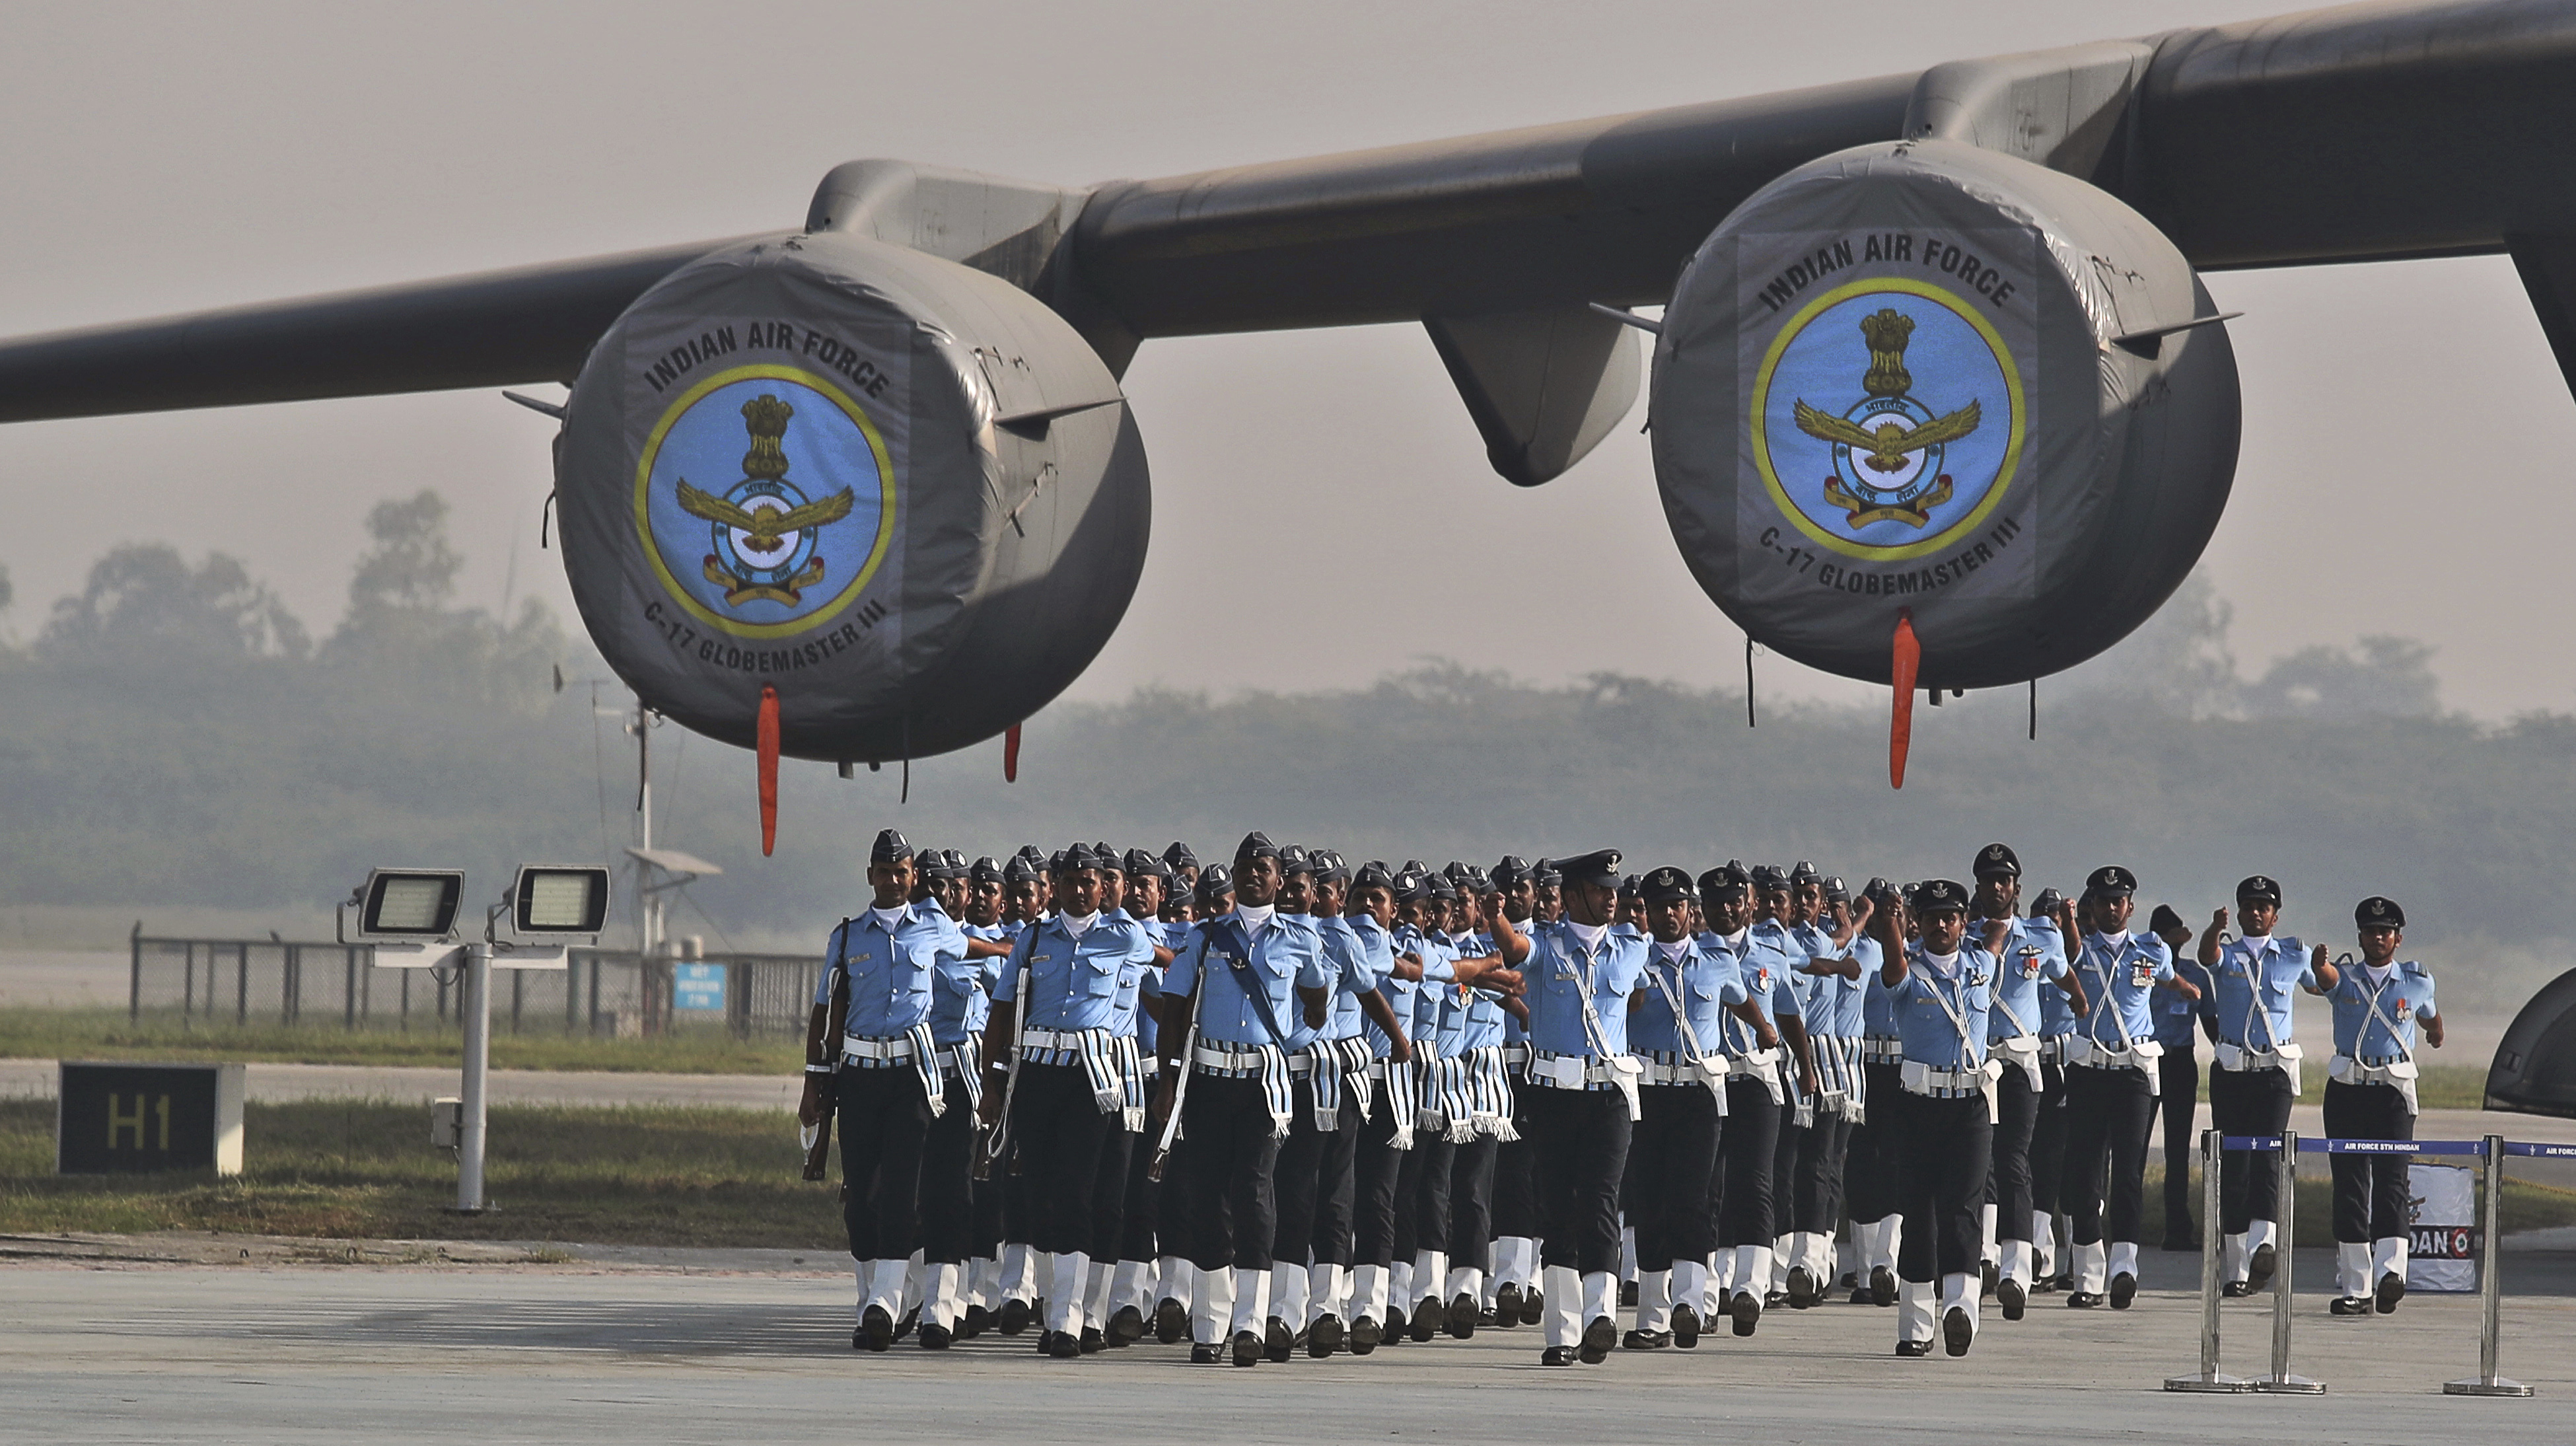 Indian Air Force soldiers march past their C-17 Globemaster military transport aircraft during the Indian Air Force day parade at the Hindon air base on the outskirts of New Delhi - AP